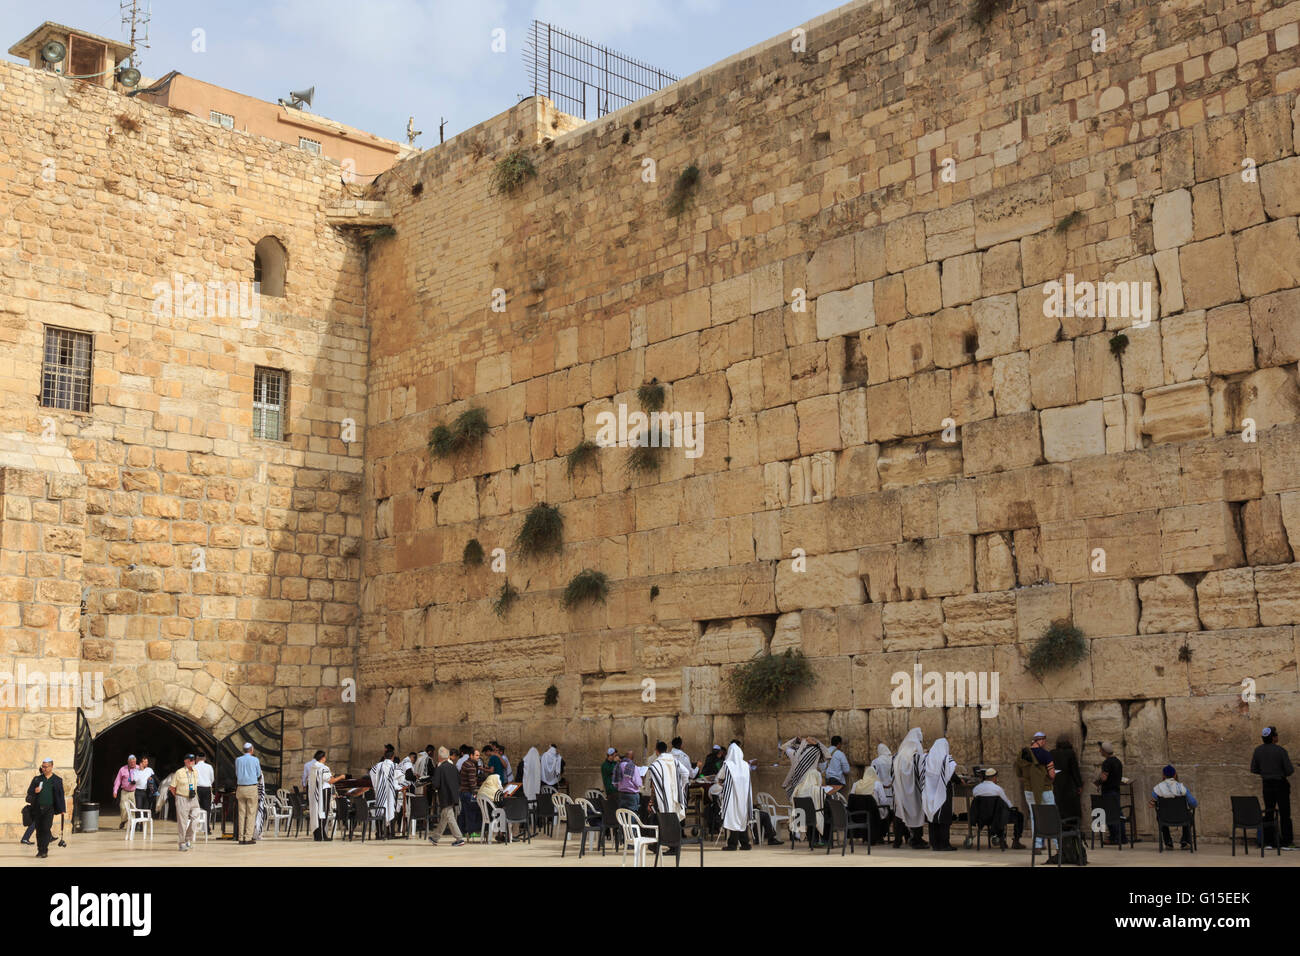 Men's Section, Western (Wailing) Wall, Temple Mount, Old City, Jerusalem, UNESCO World Heritage Site, Israel, - Stock Image